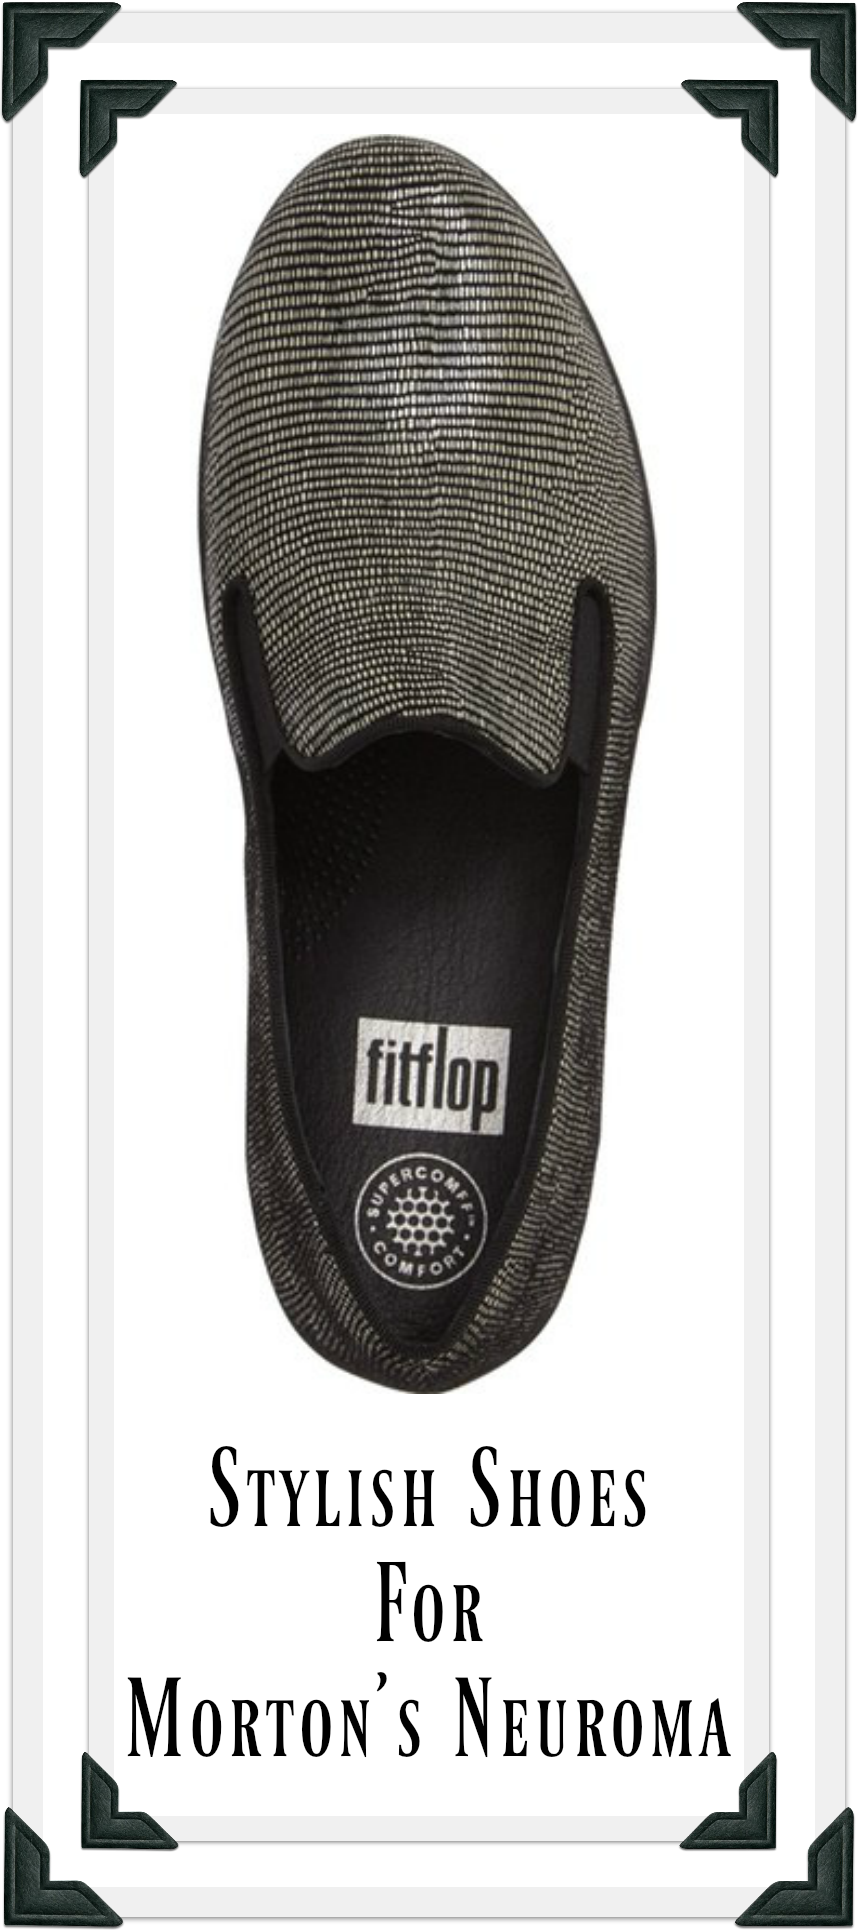 b5ac7cd8f8514c See our picks for stylish shoes that won t aggravate a Morton s  Neuroma--featuring the Fitflop Superskate.